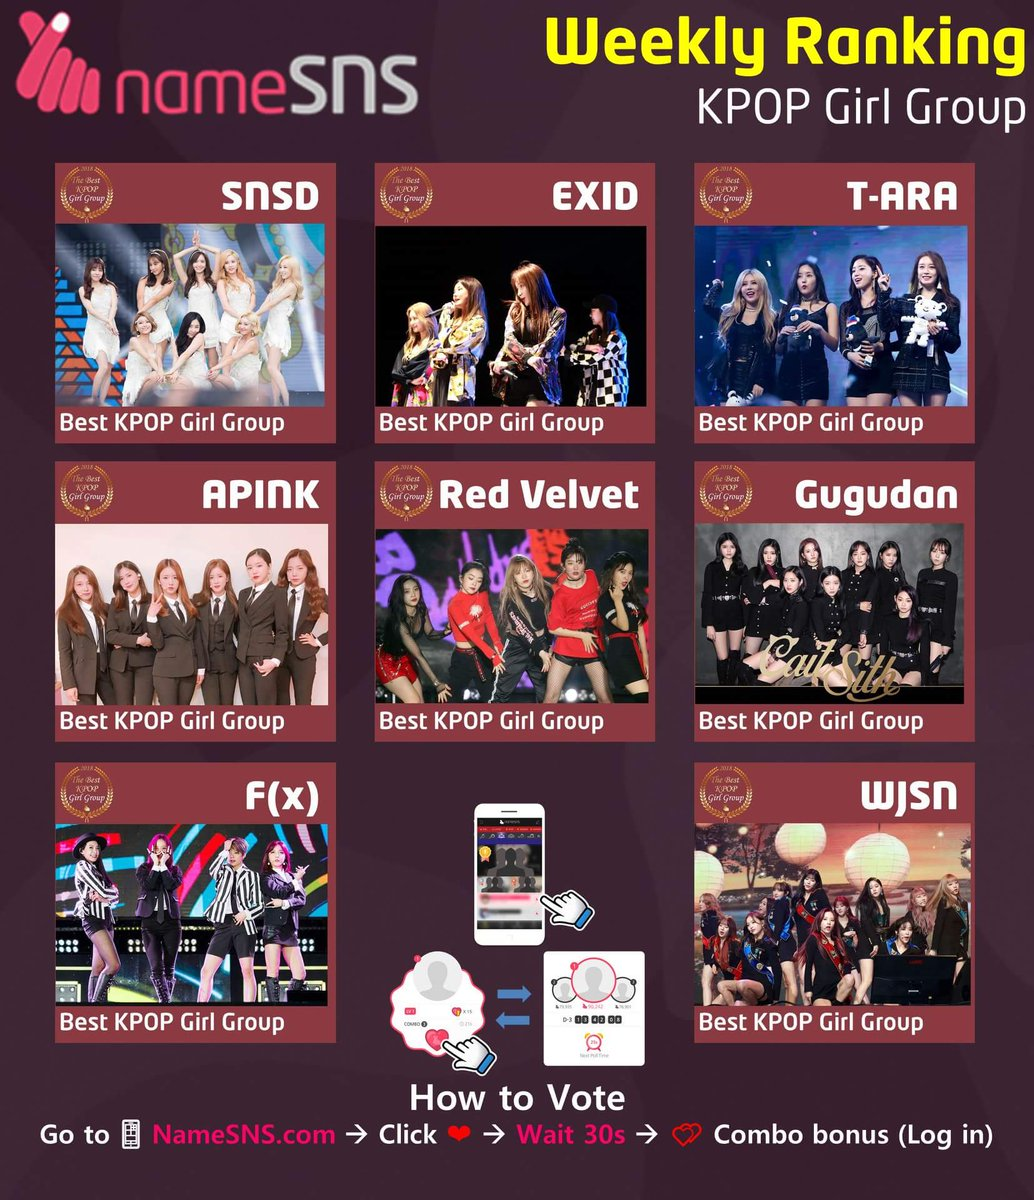 NameSNS KPOP / KDrama (Official) on Twitter: